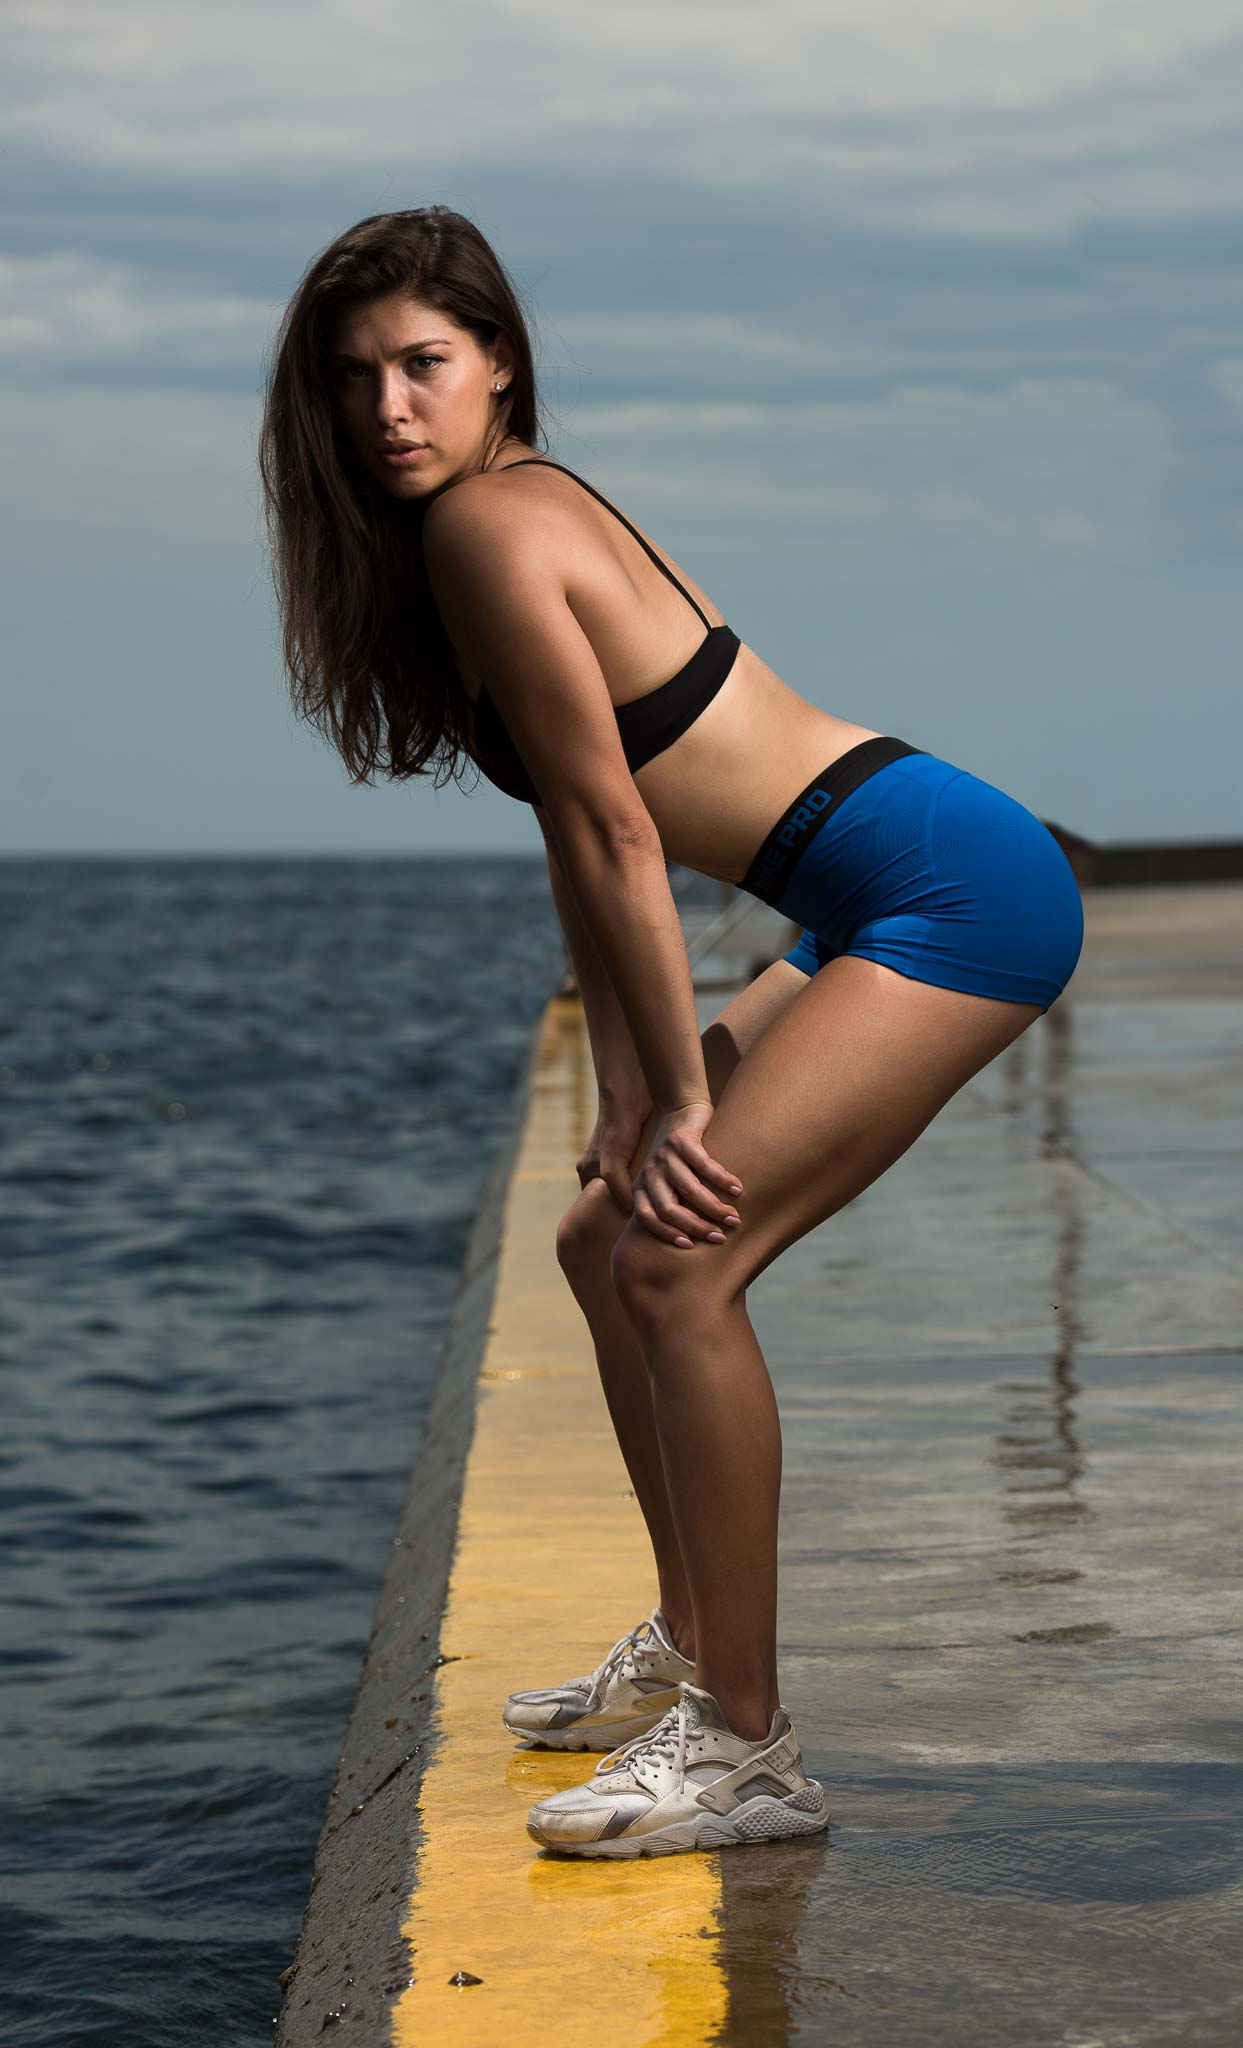 Edina Sydneys Mediterranean fitness model at Bronti beach